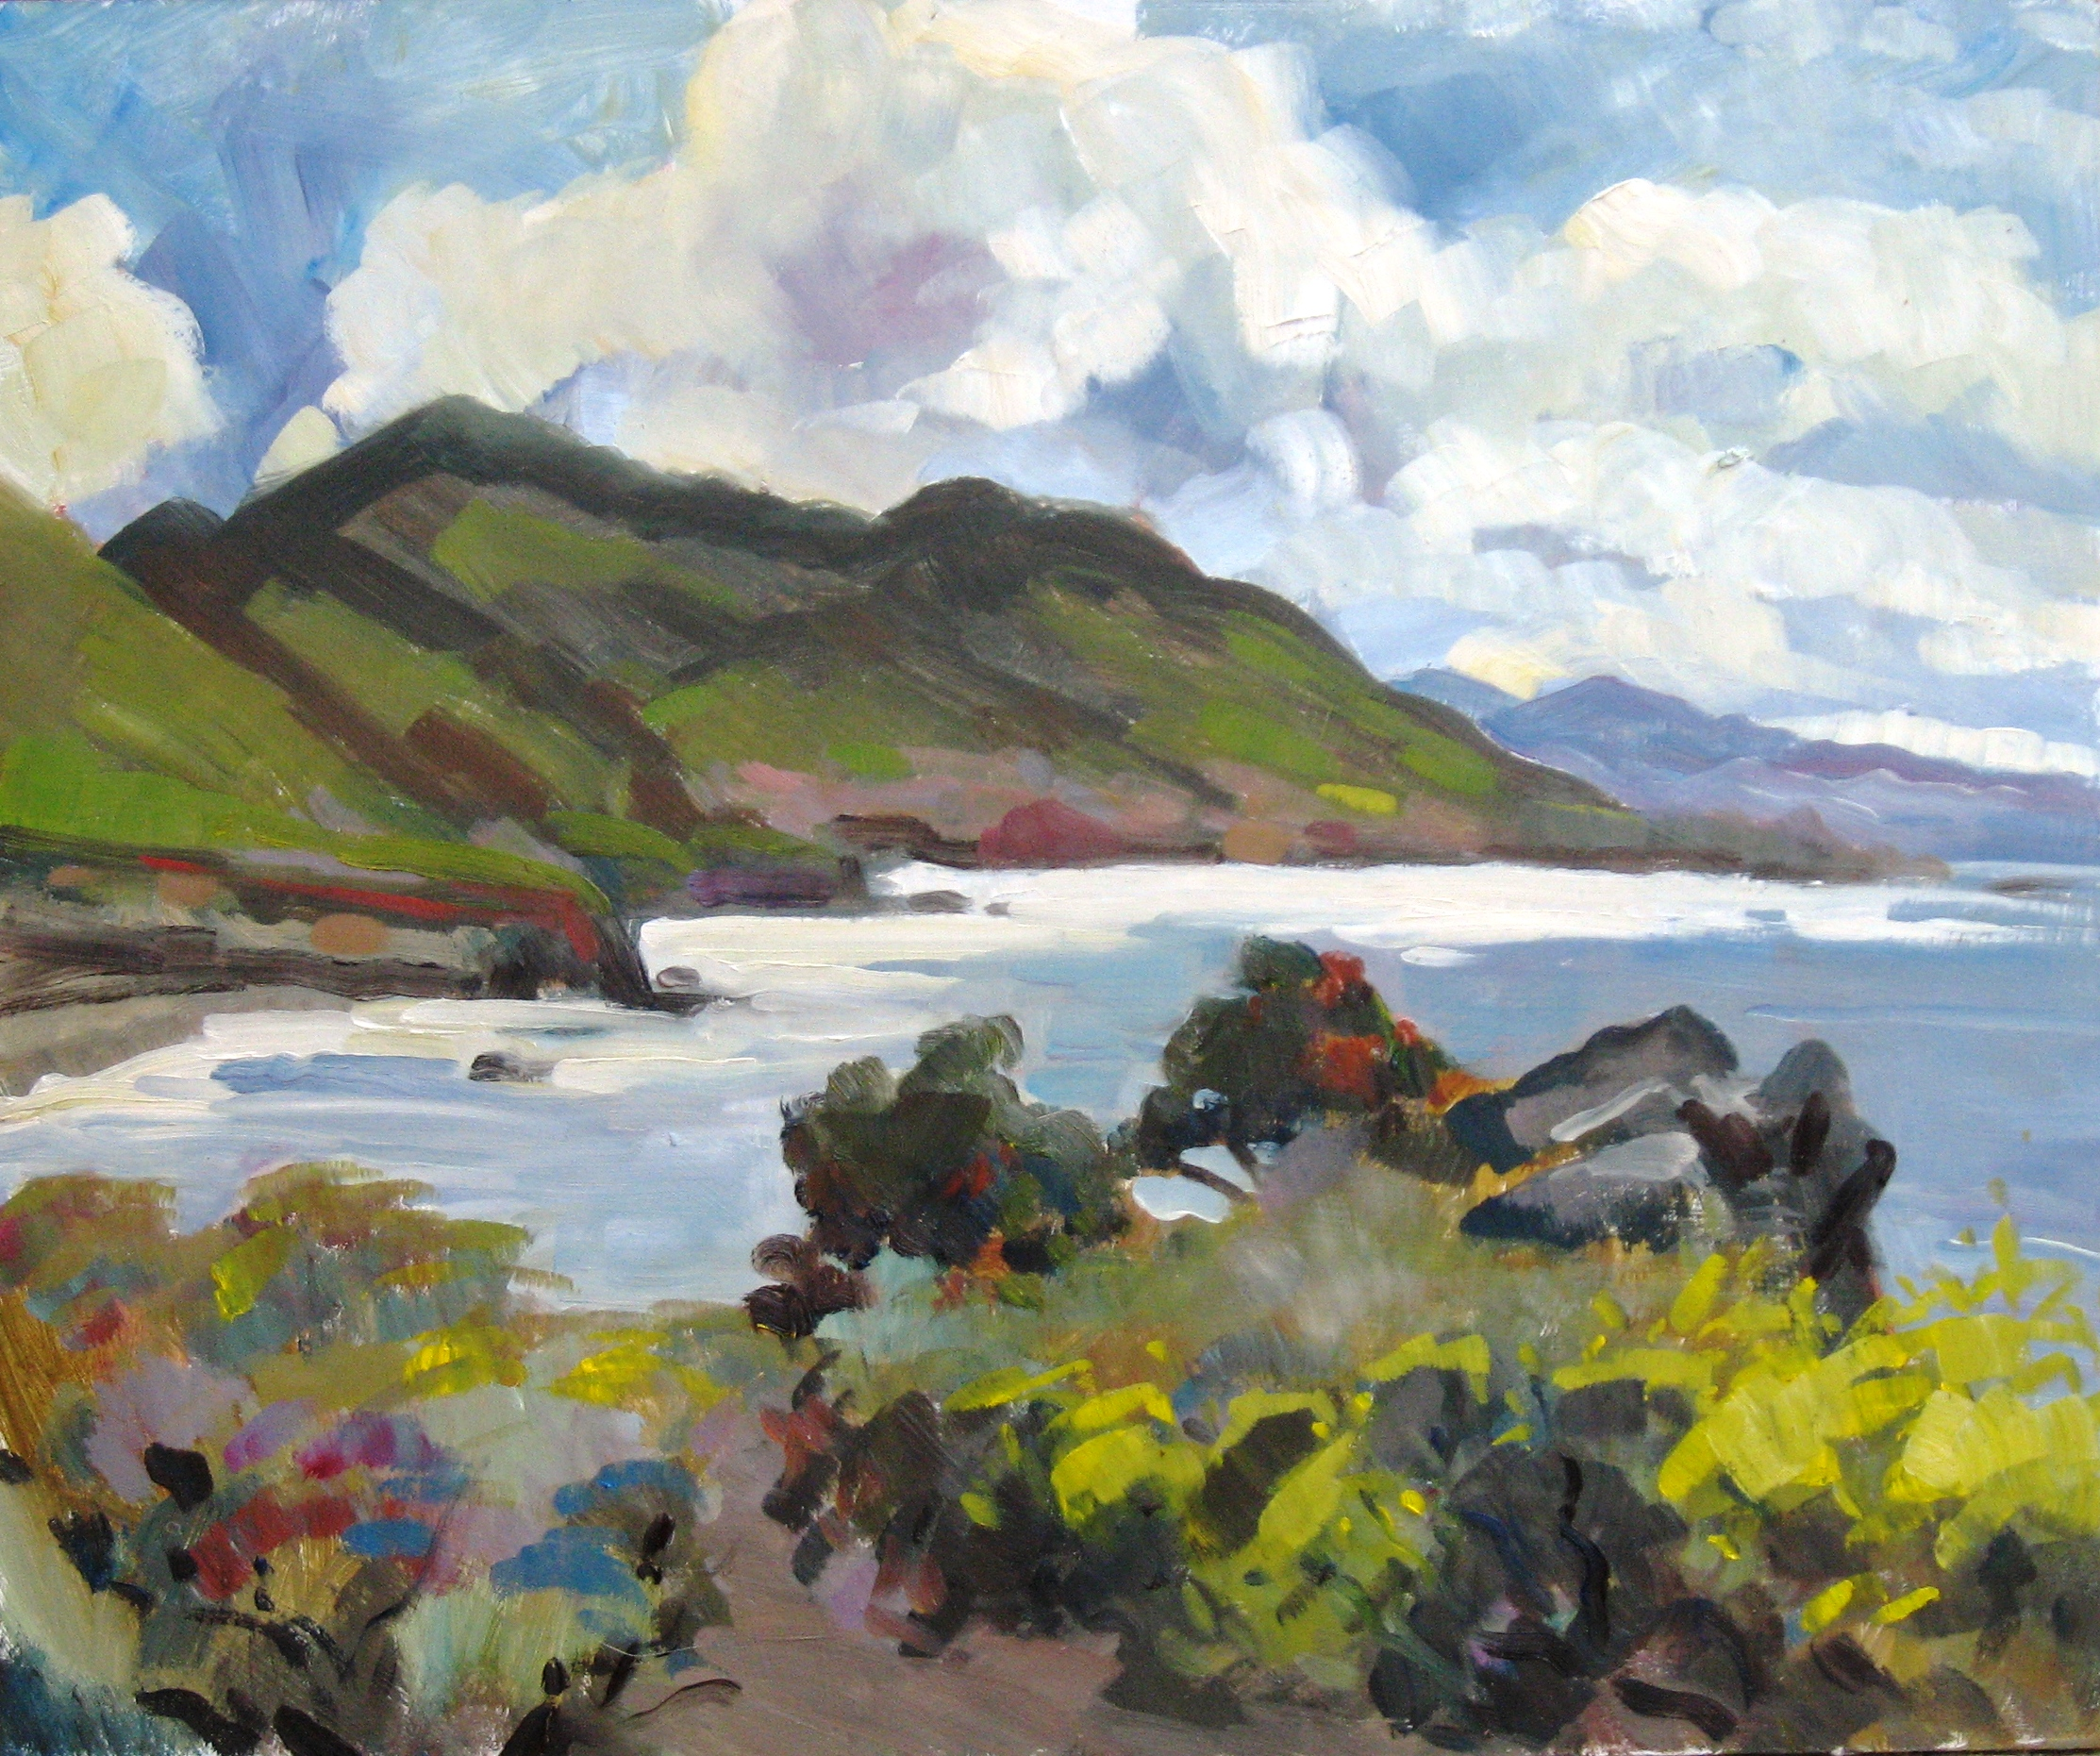 Pirates Cove Looking South, oil on panel, 15 x 18 inches, 2010 - UNAVAILABLE